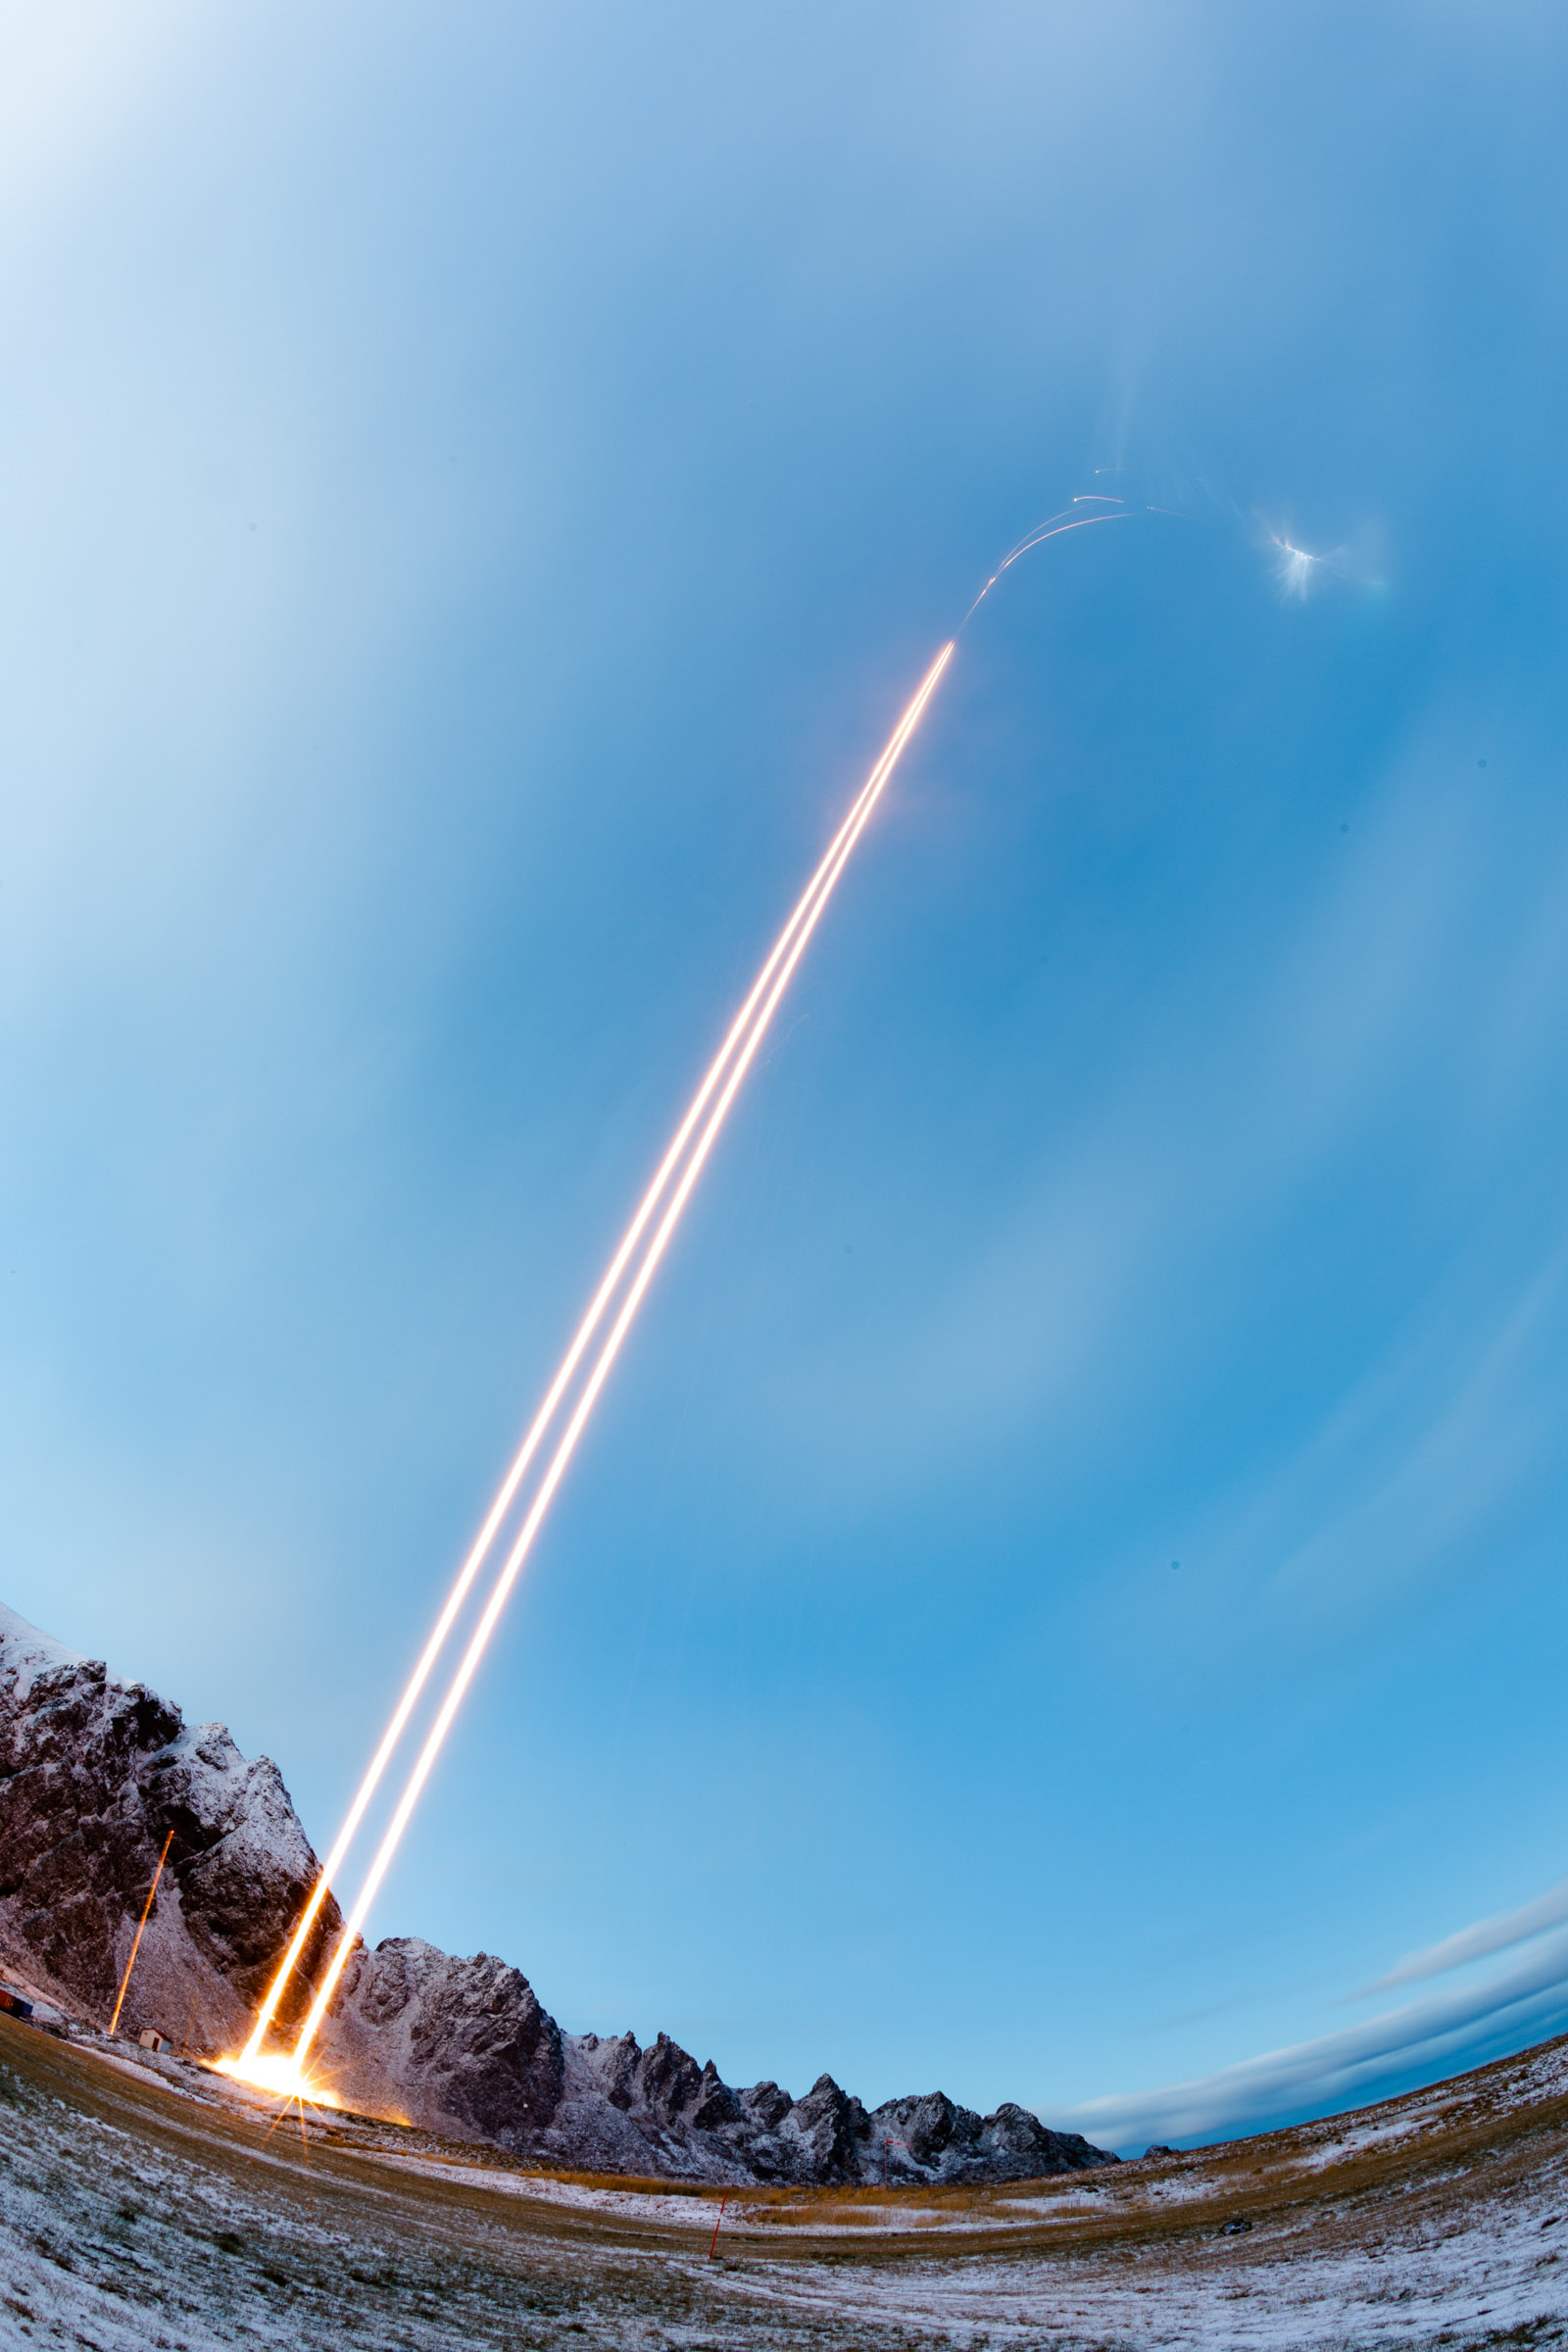 The two TRICE-2 Black Brant XII sounding rockets are seen in this time-lapse photograph soaring into space over the Norwegian Sea. Credits NASA/Jamie Adkins